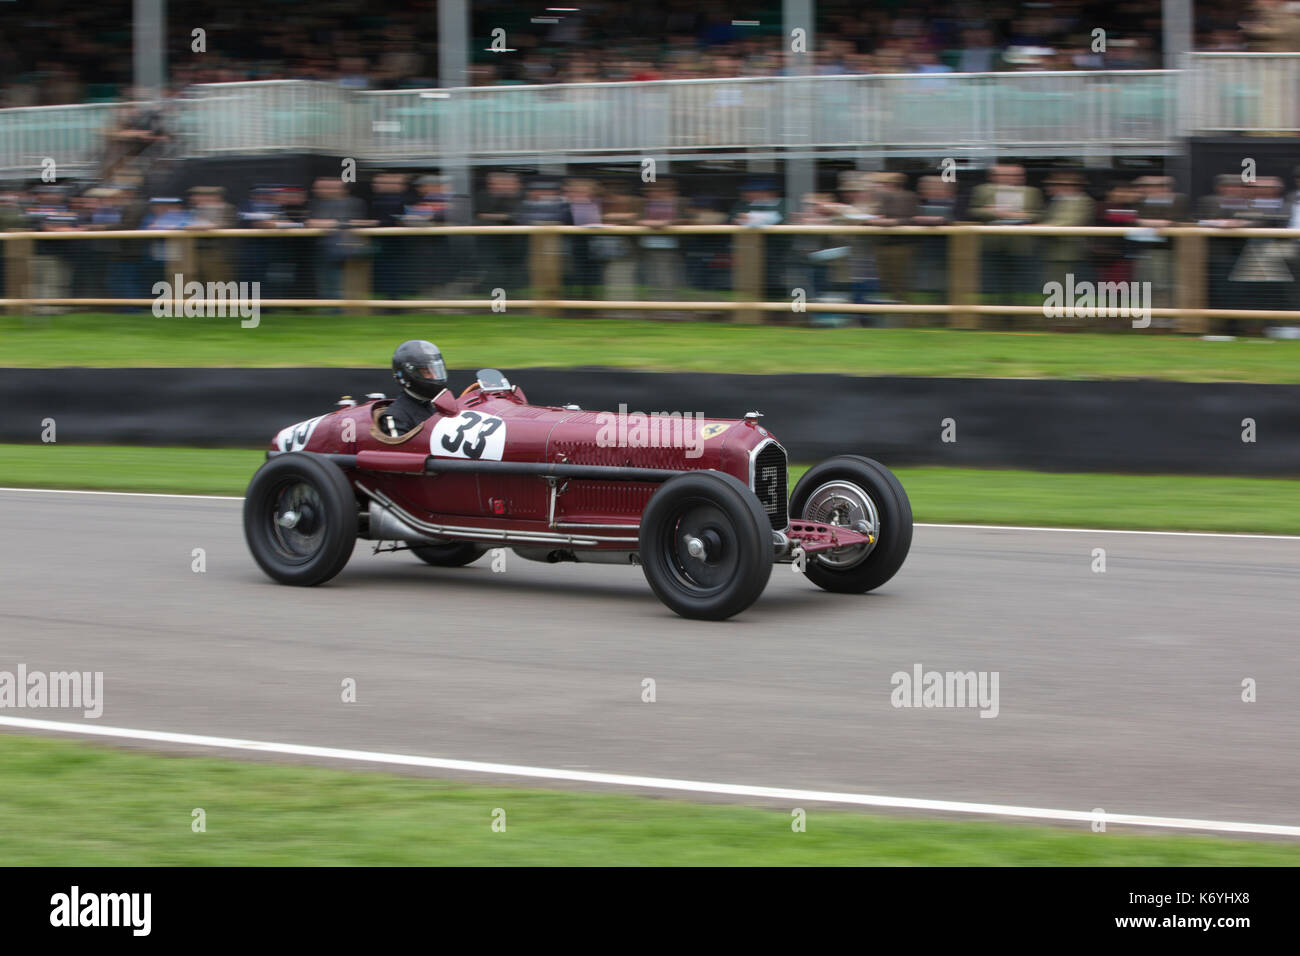 Goodwood Revival 2017 Meeting, Goodwood race track, organised by the British Automobile Racing Club, Chichester, Stock Photo